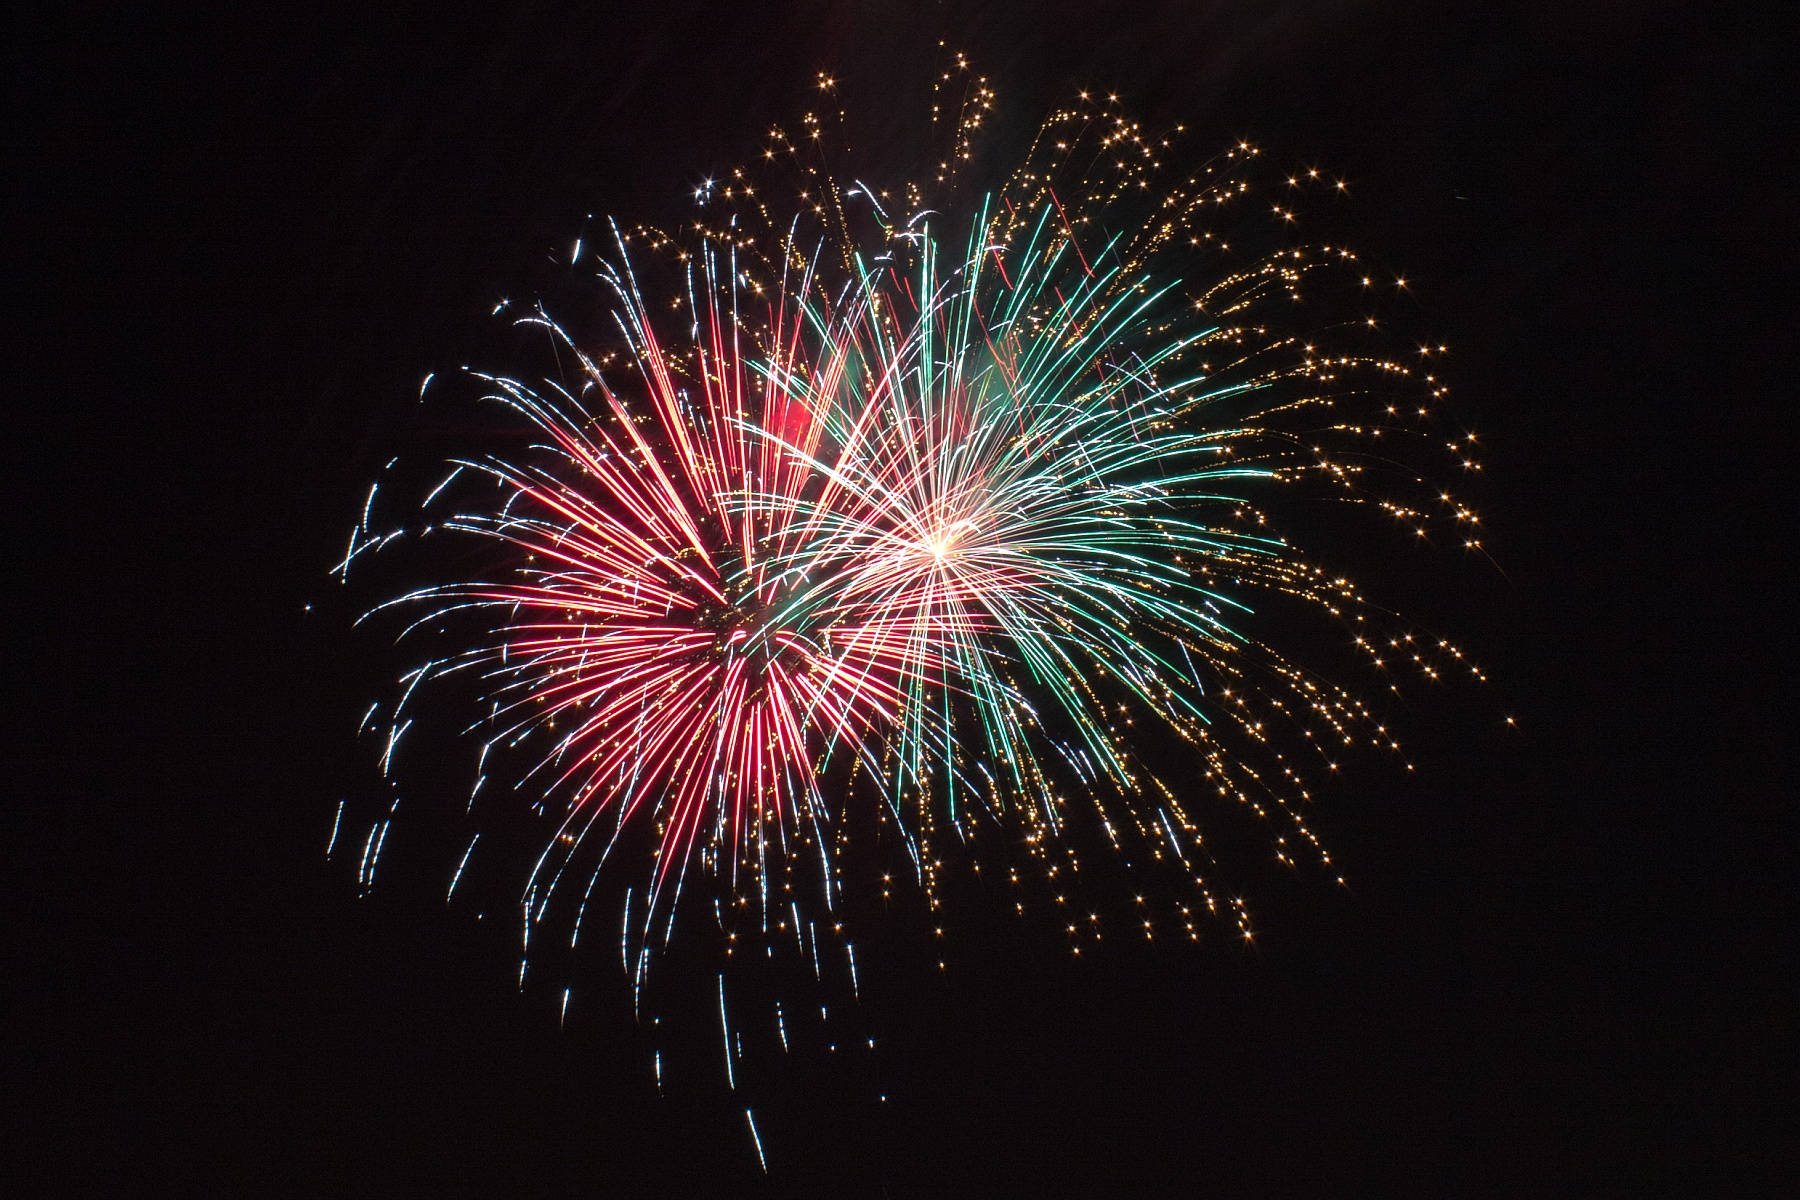 red green and gold fireworks